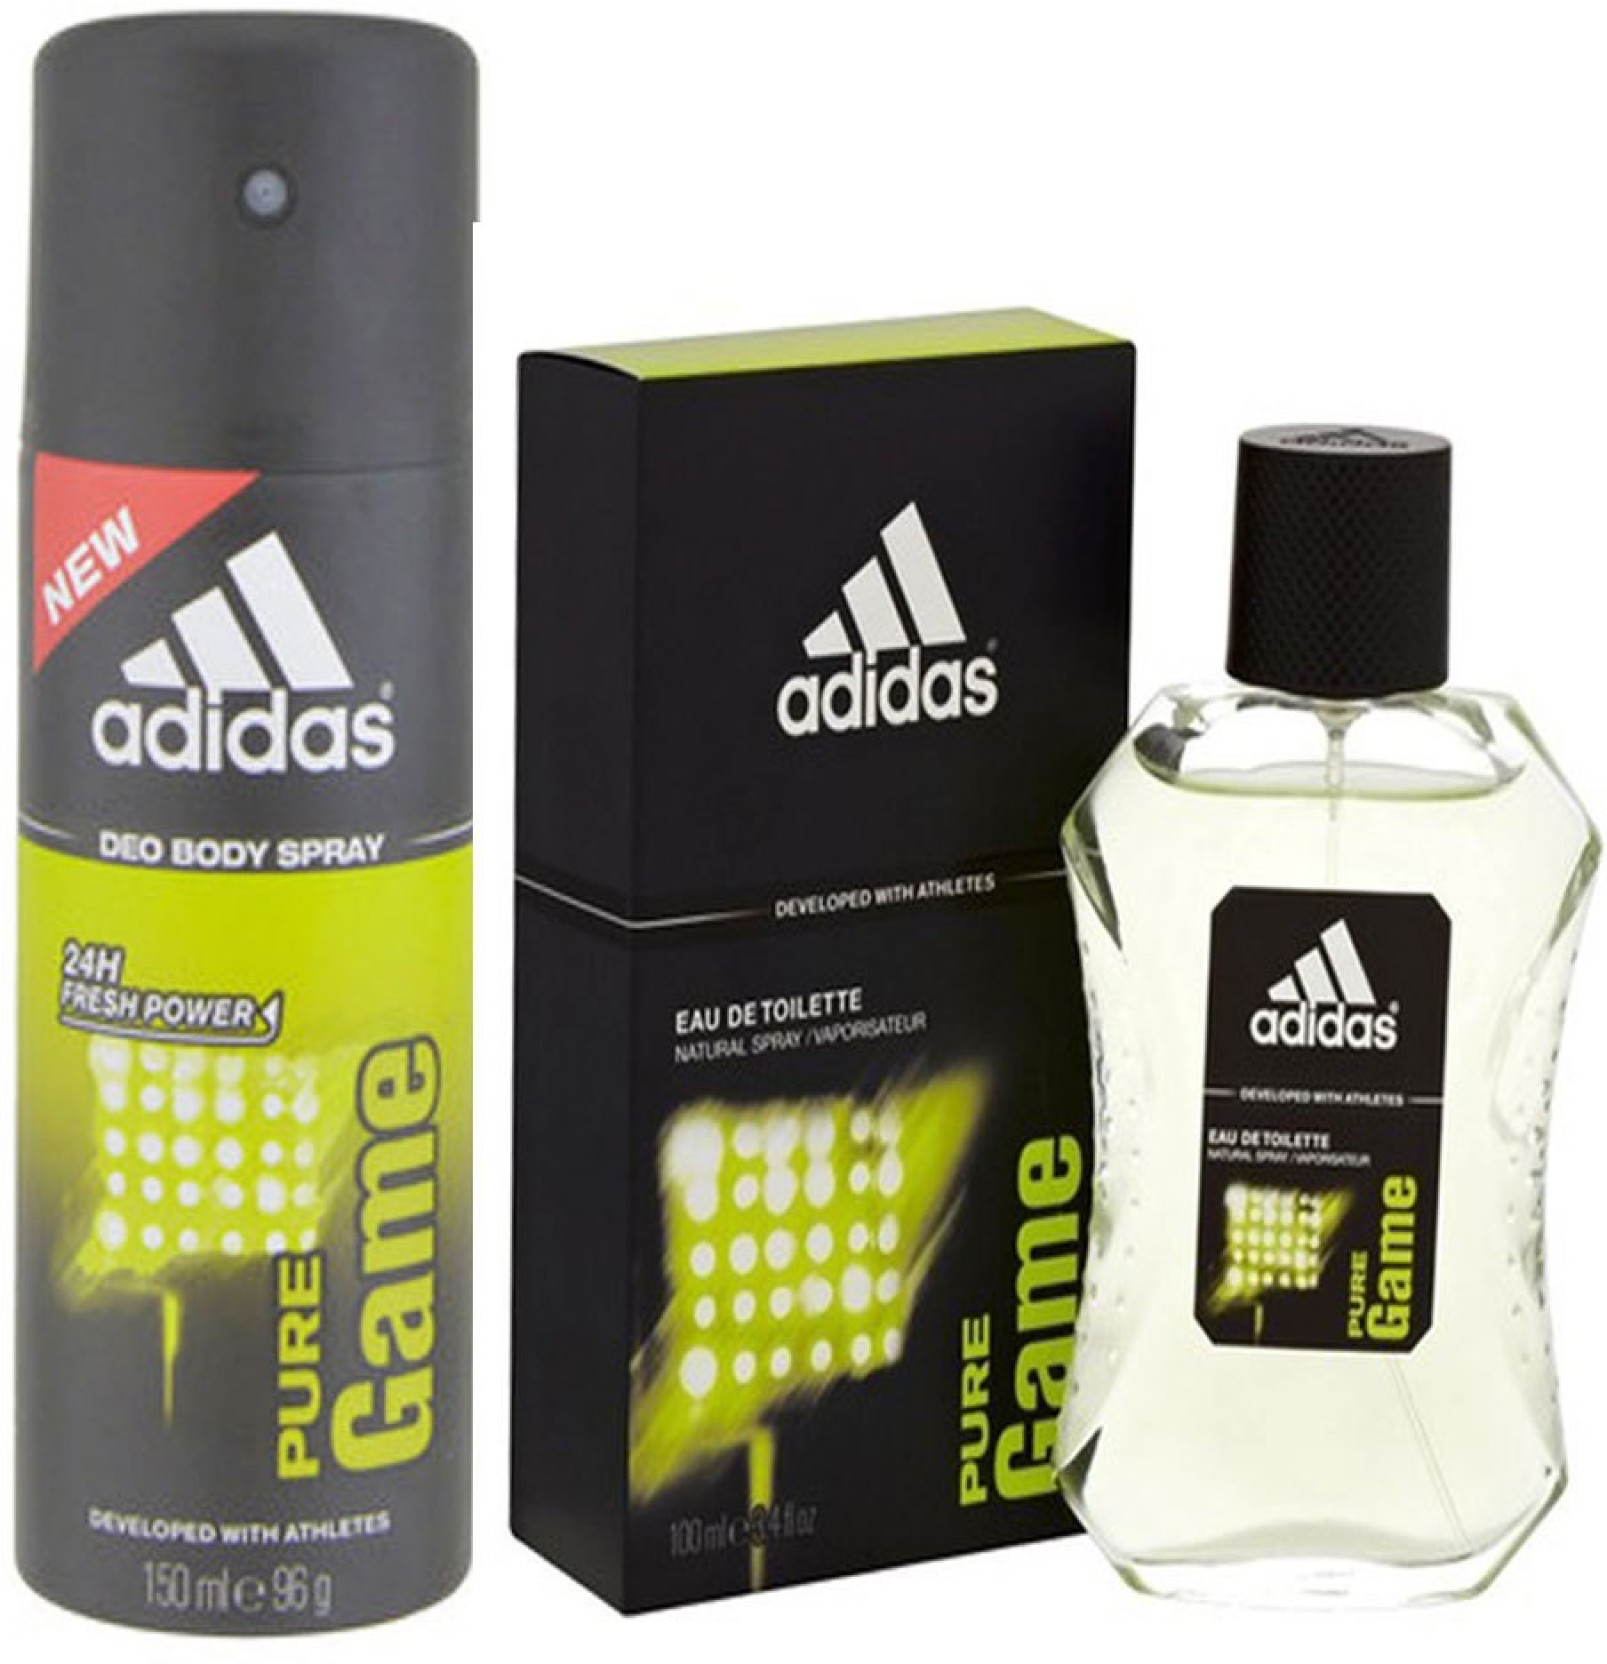 Adidas Pure Game Combo Set Buy Online At Parfum Original Get Ready On Offer